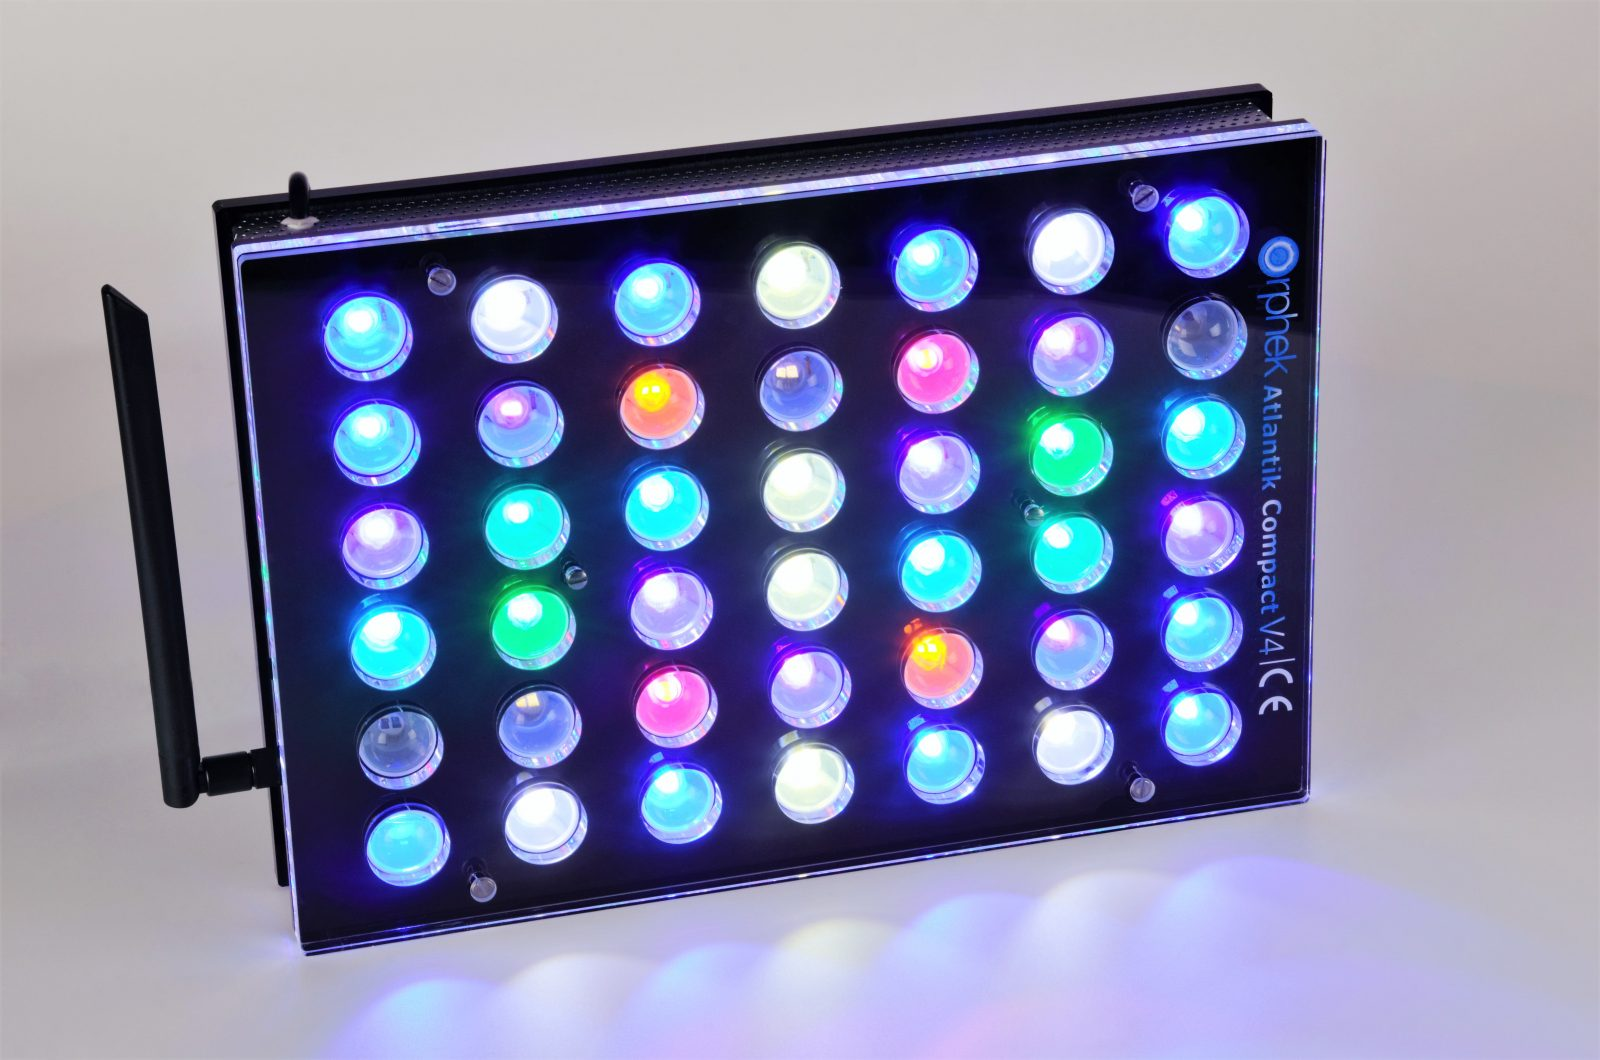 Orphek Aquarium LED Lighting Atlantik Compact V4 lig op kanaal 1 + 2 + 3 + 4